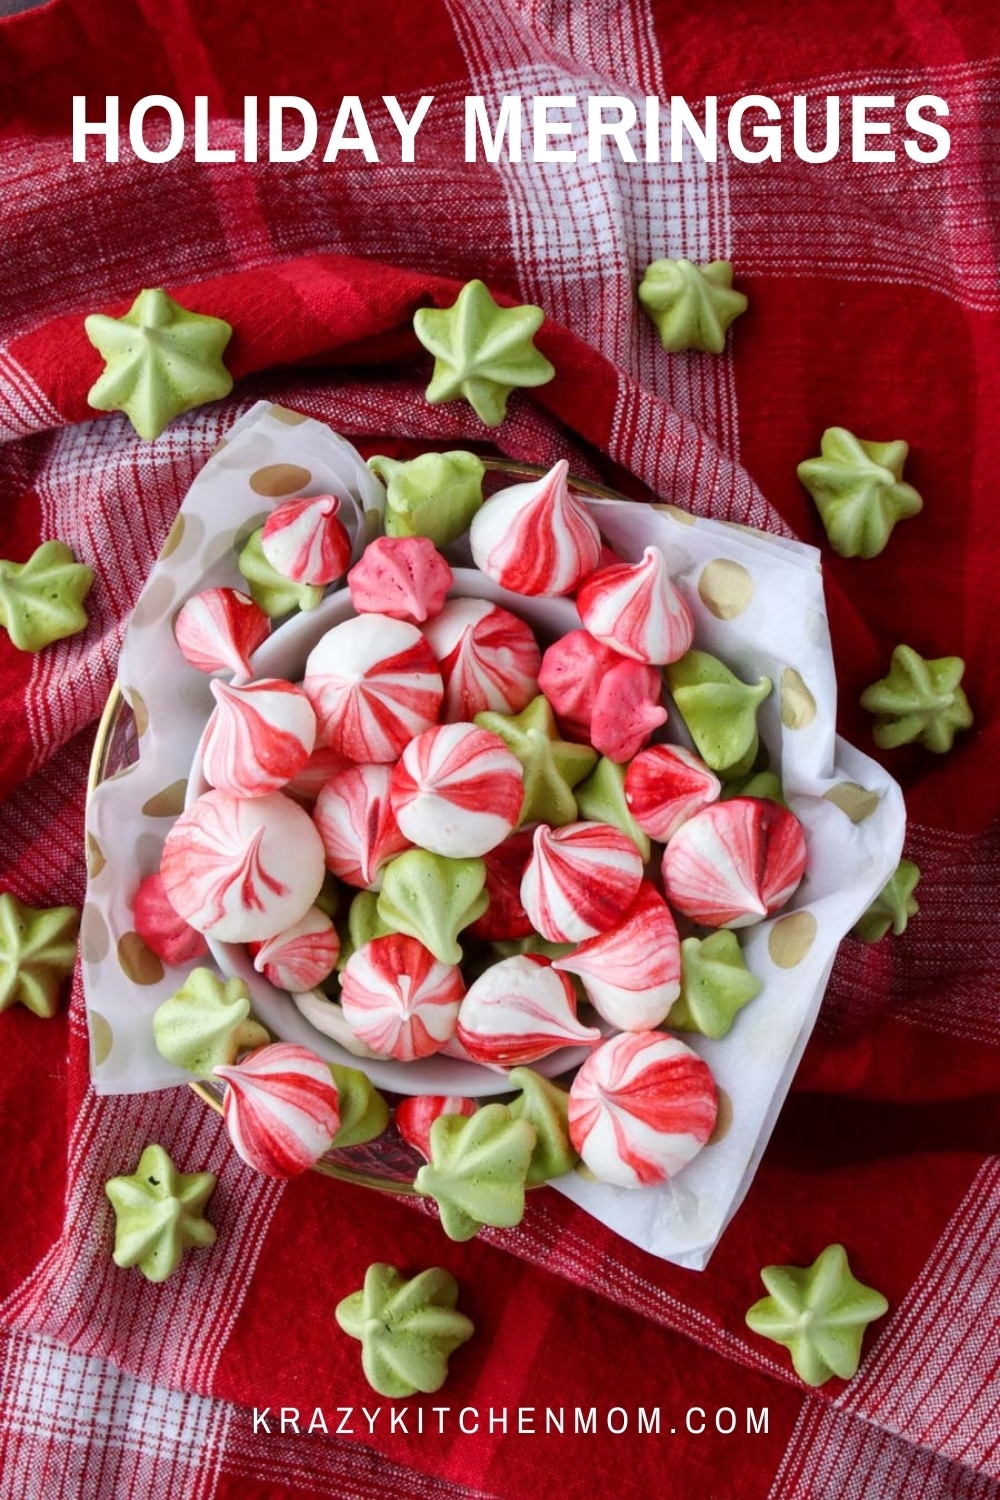 Crisp and snappy on the outside, light and fluffy on the inside, these pillowy little treats light up any holiday gathering. via @krazykitchenmom